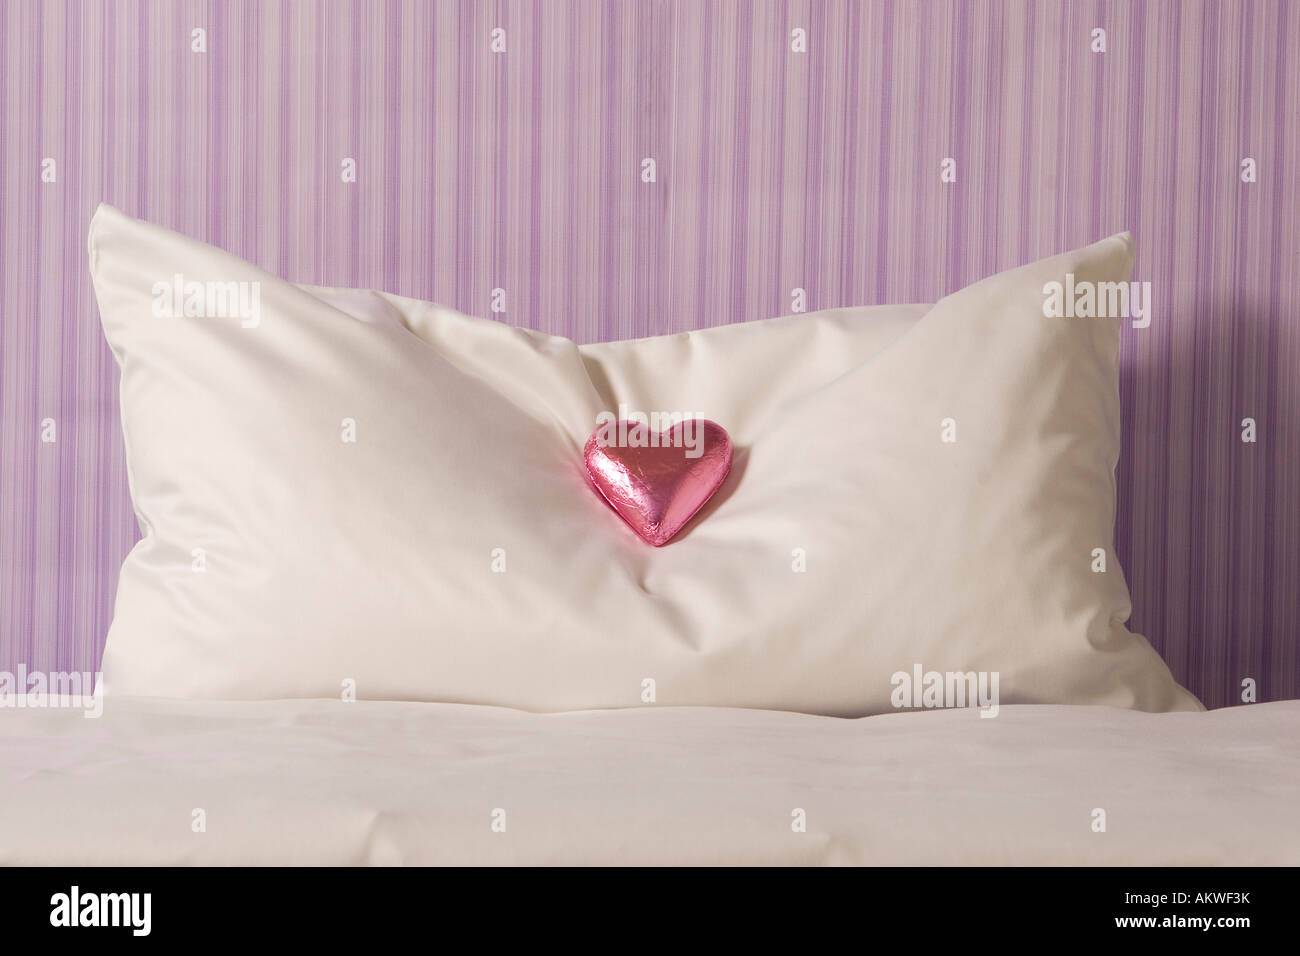 chocolate on hotel room pillow close up stock photo 15079830 alamy